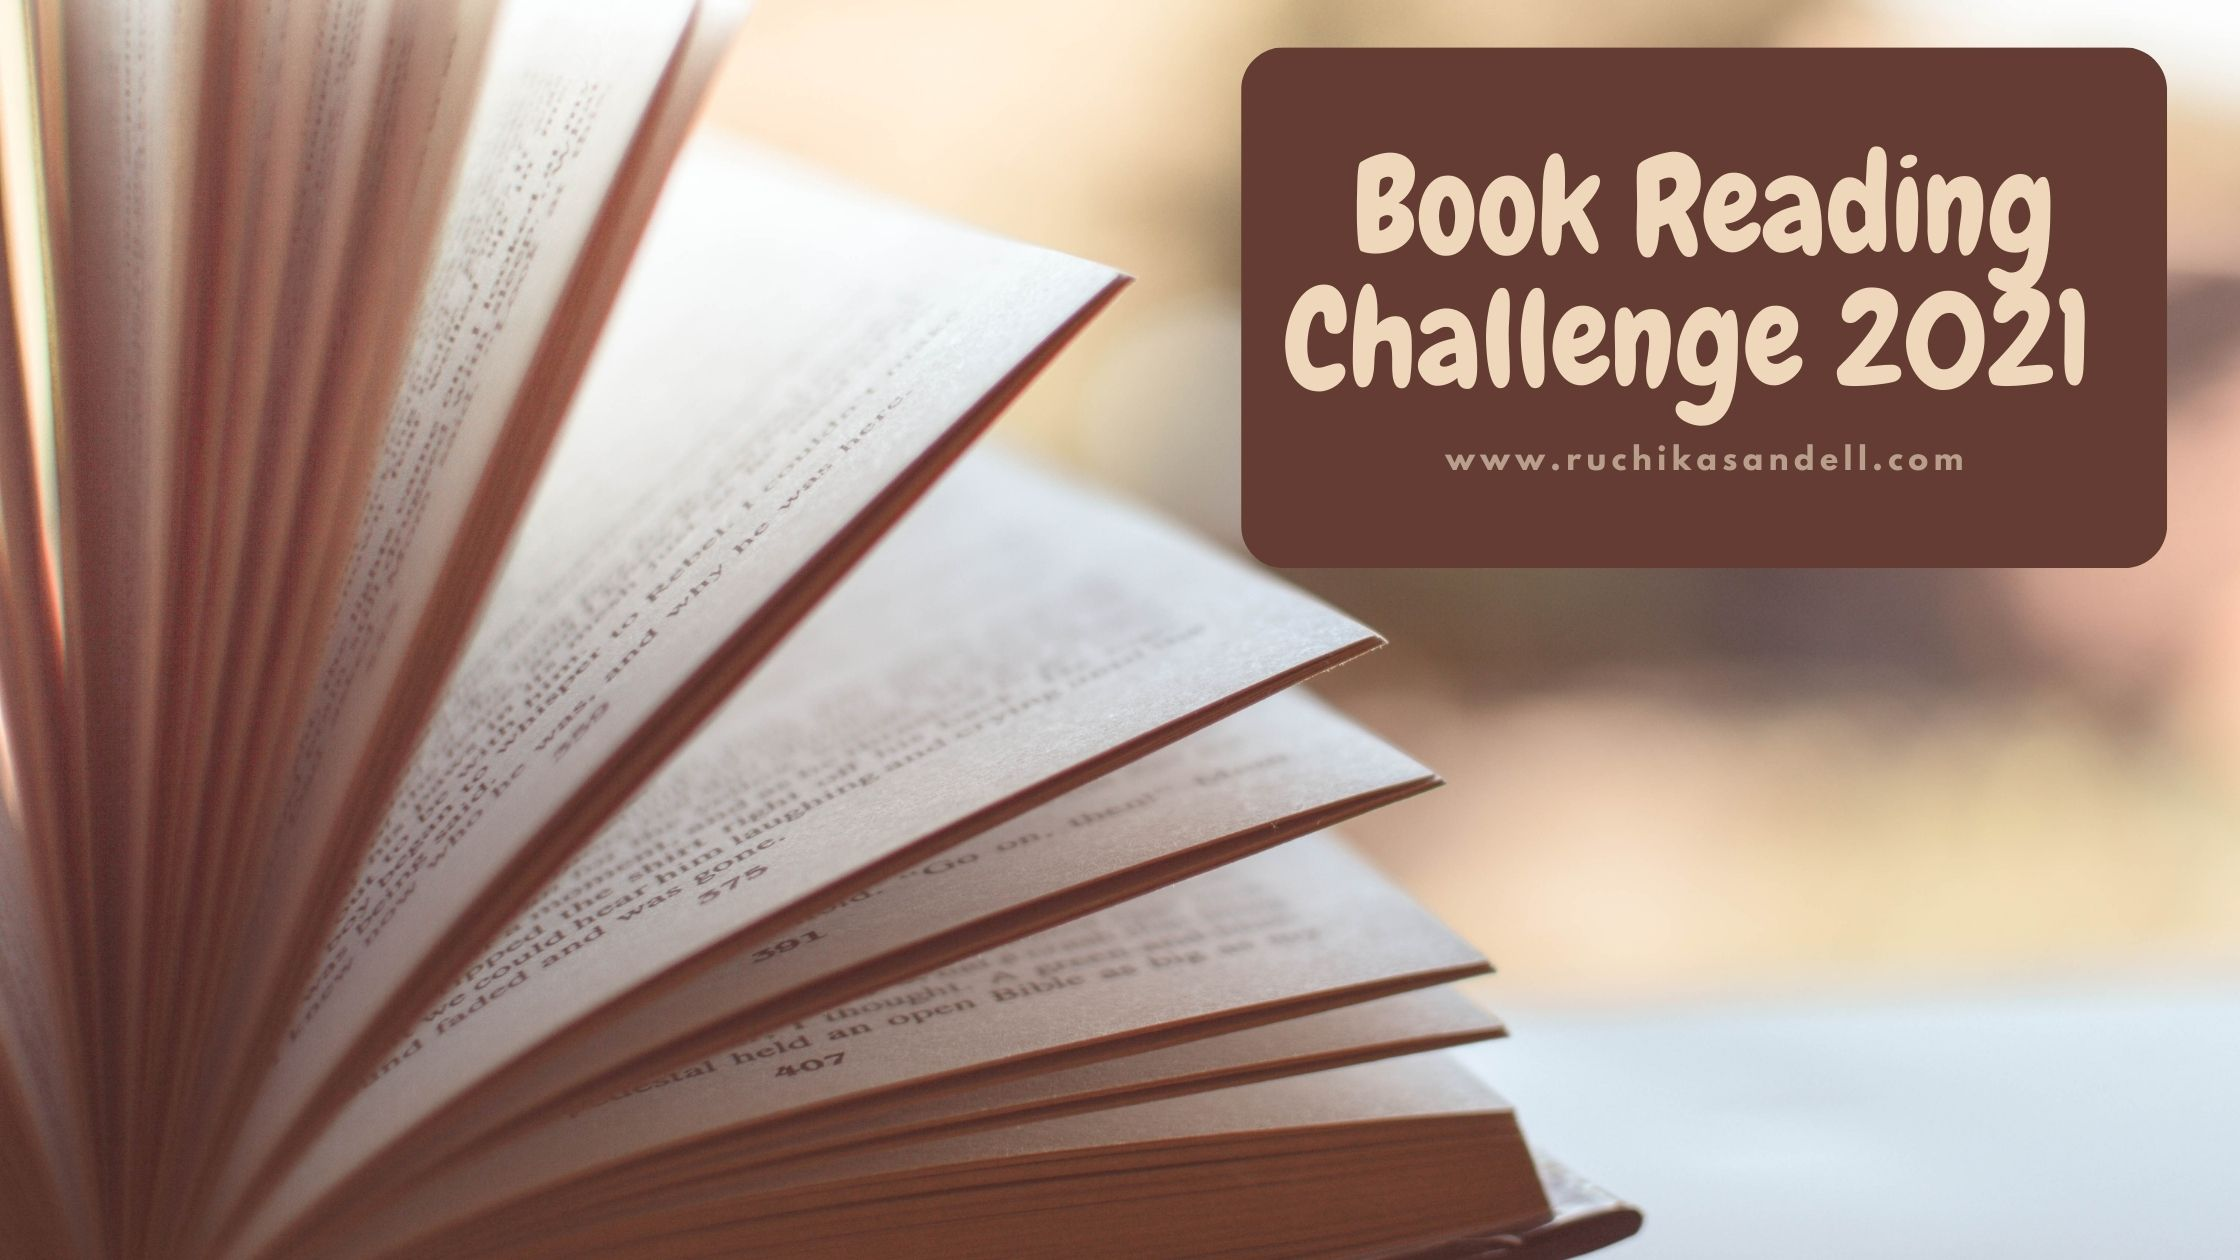 Book reading Challenge for 2021